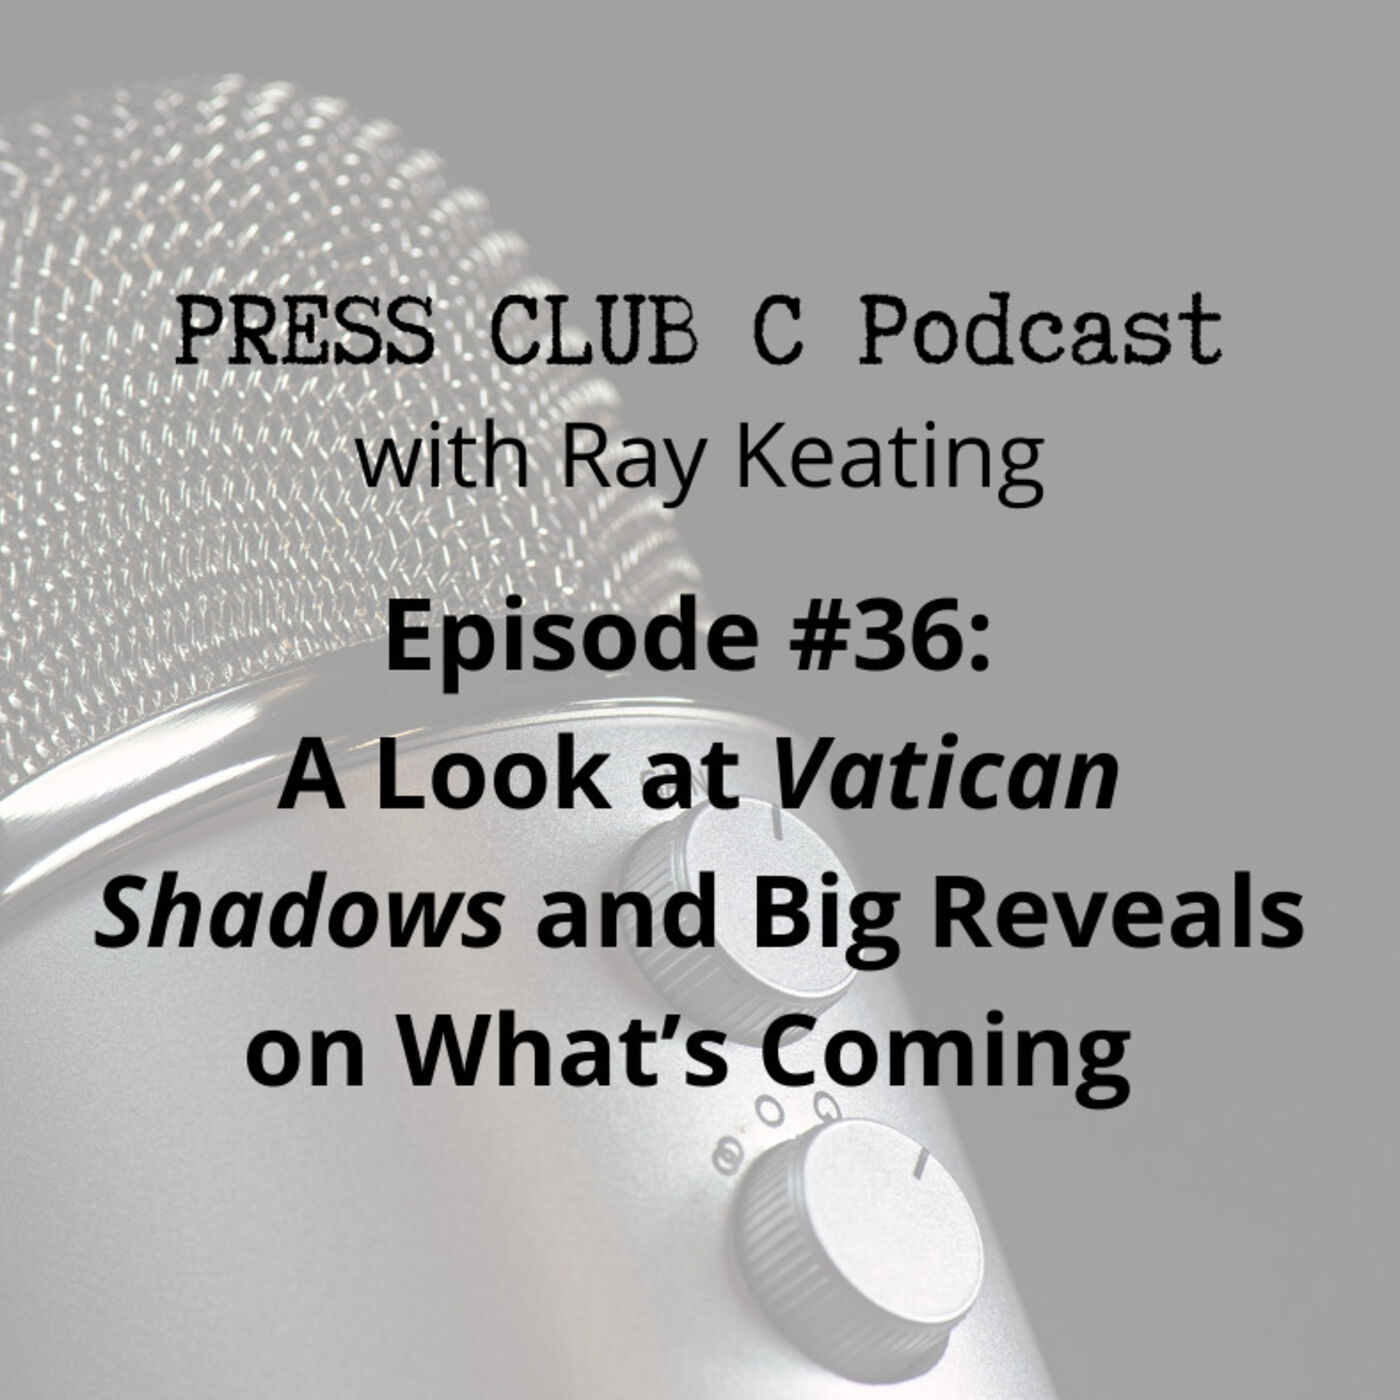 Episode #36: A Look at Vatican Shadows and Big Reveals on What's Coming